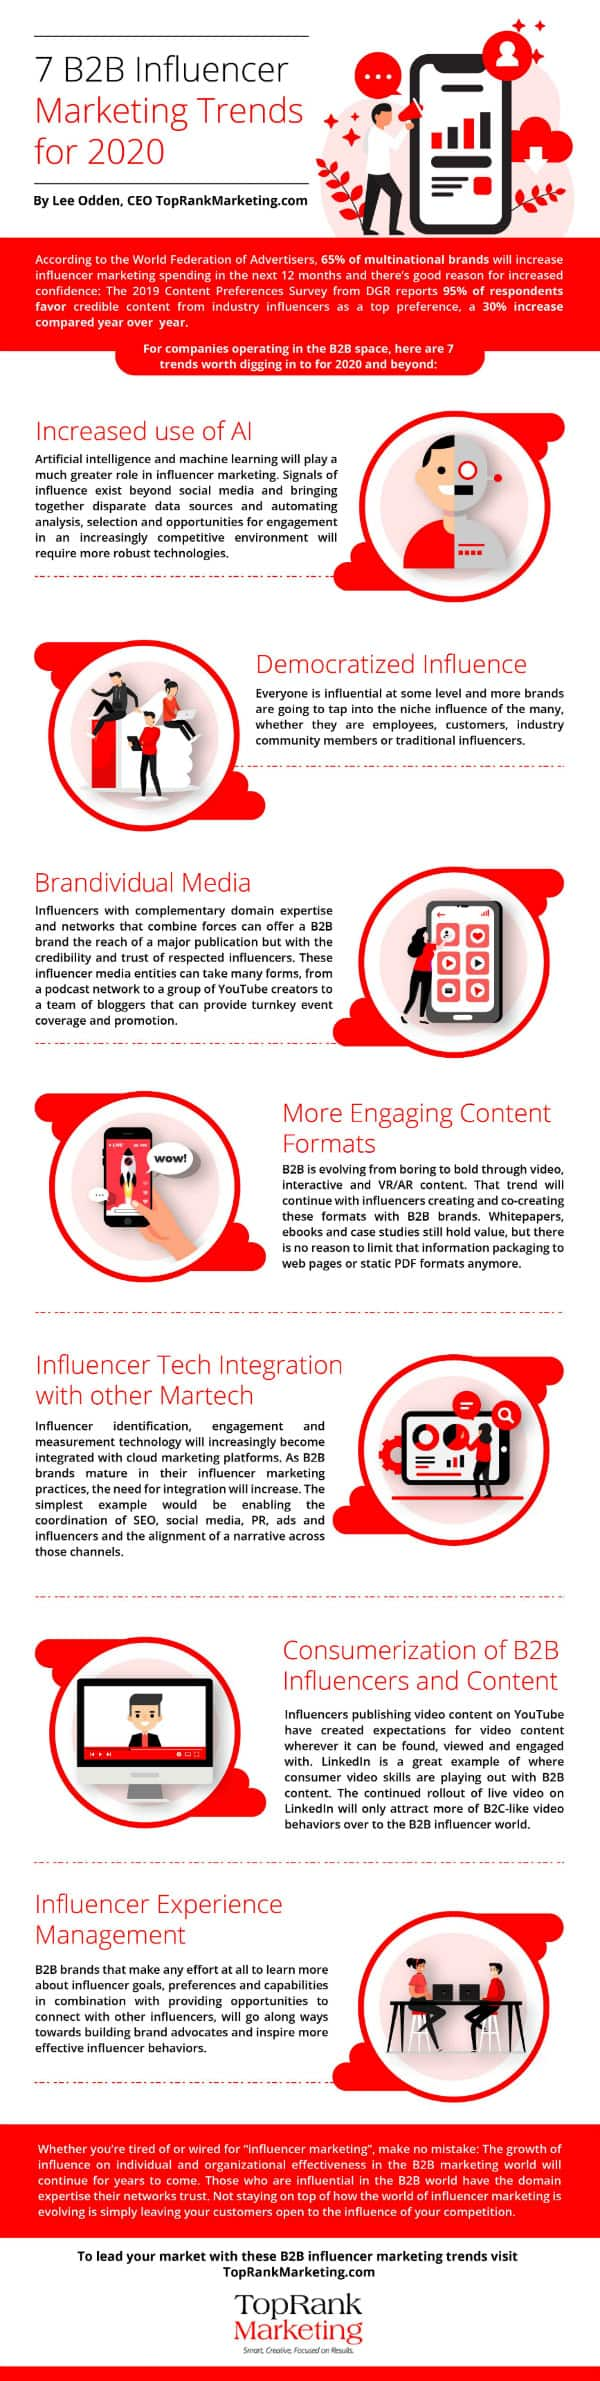 Learn about the top trends in 2020 to look for in the evolving landscape of B2B influencer marketing with this engaging infographic!